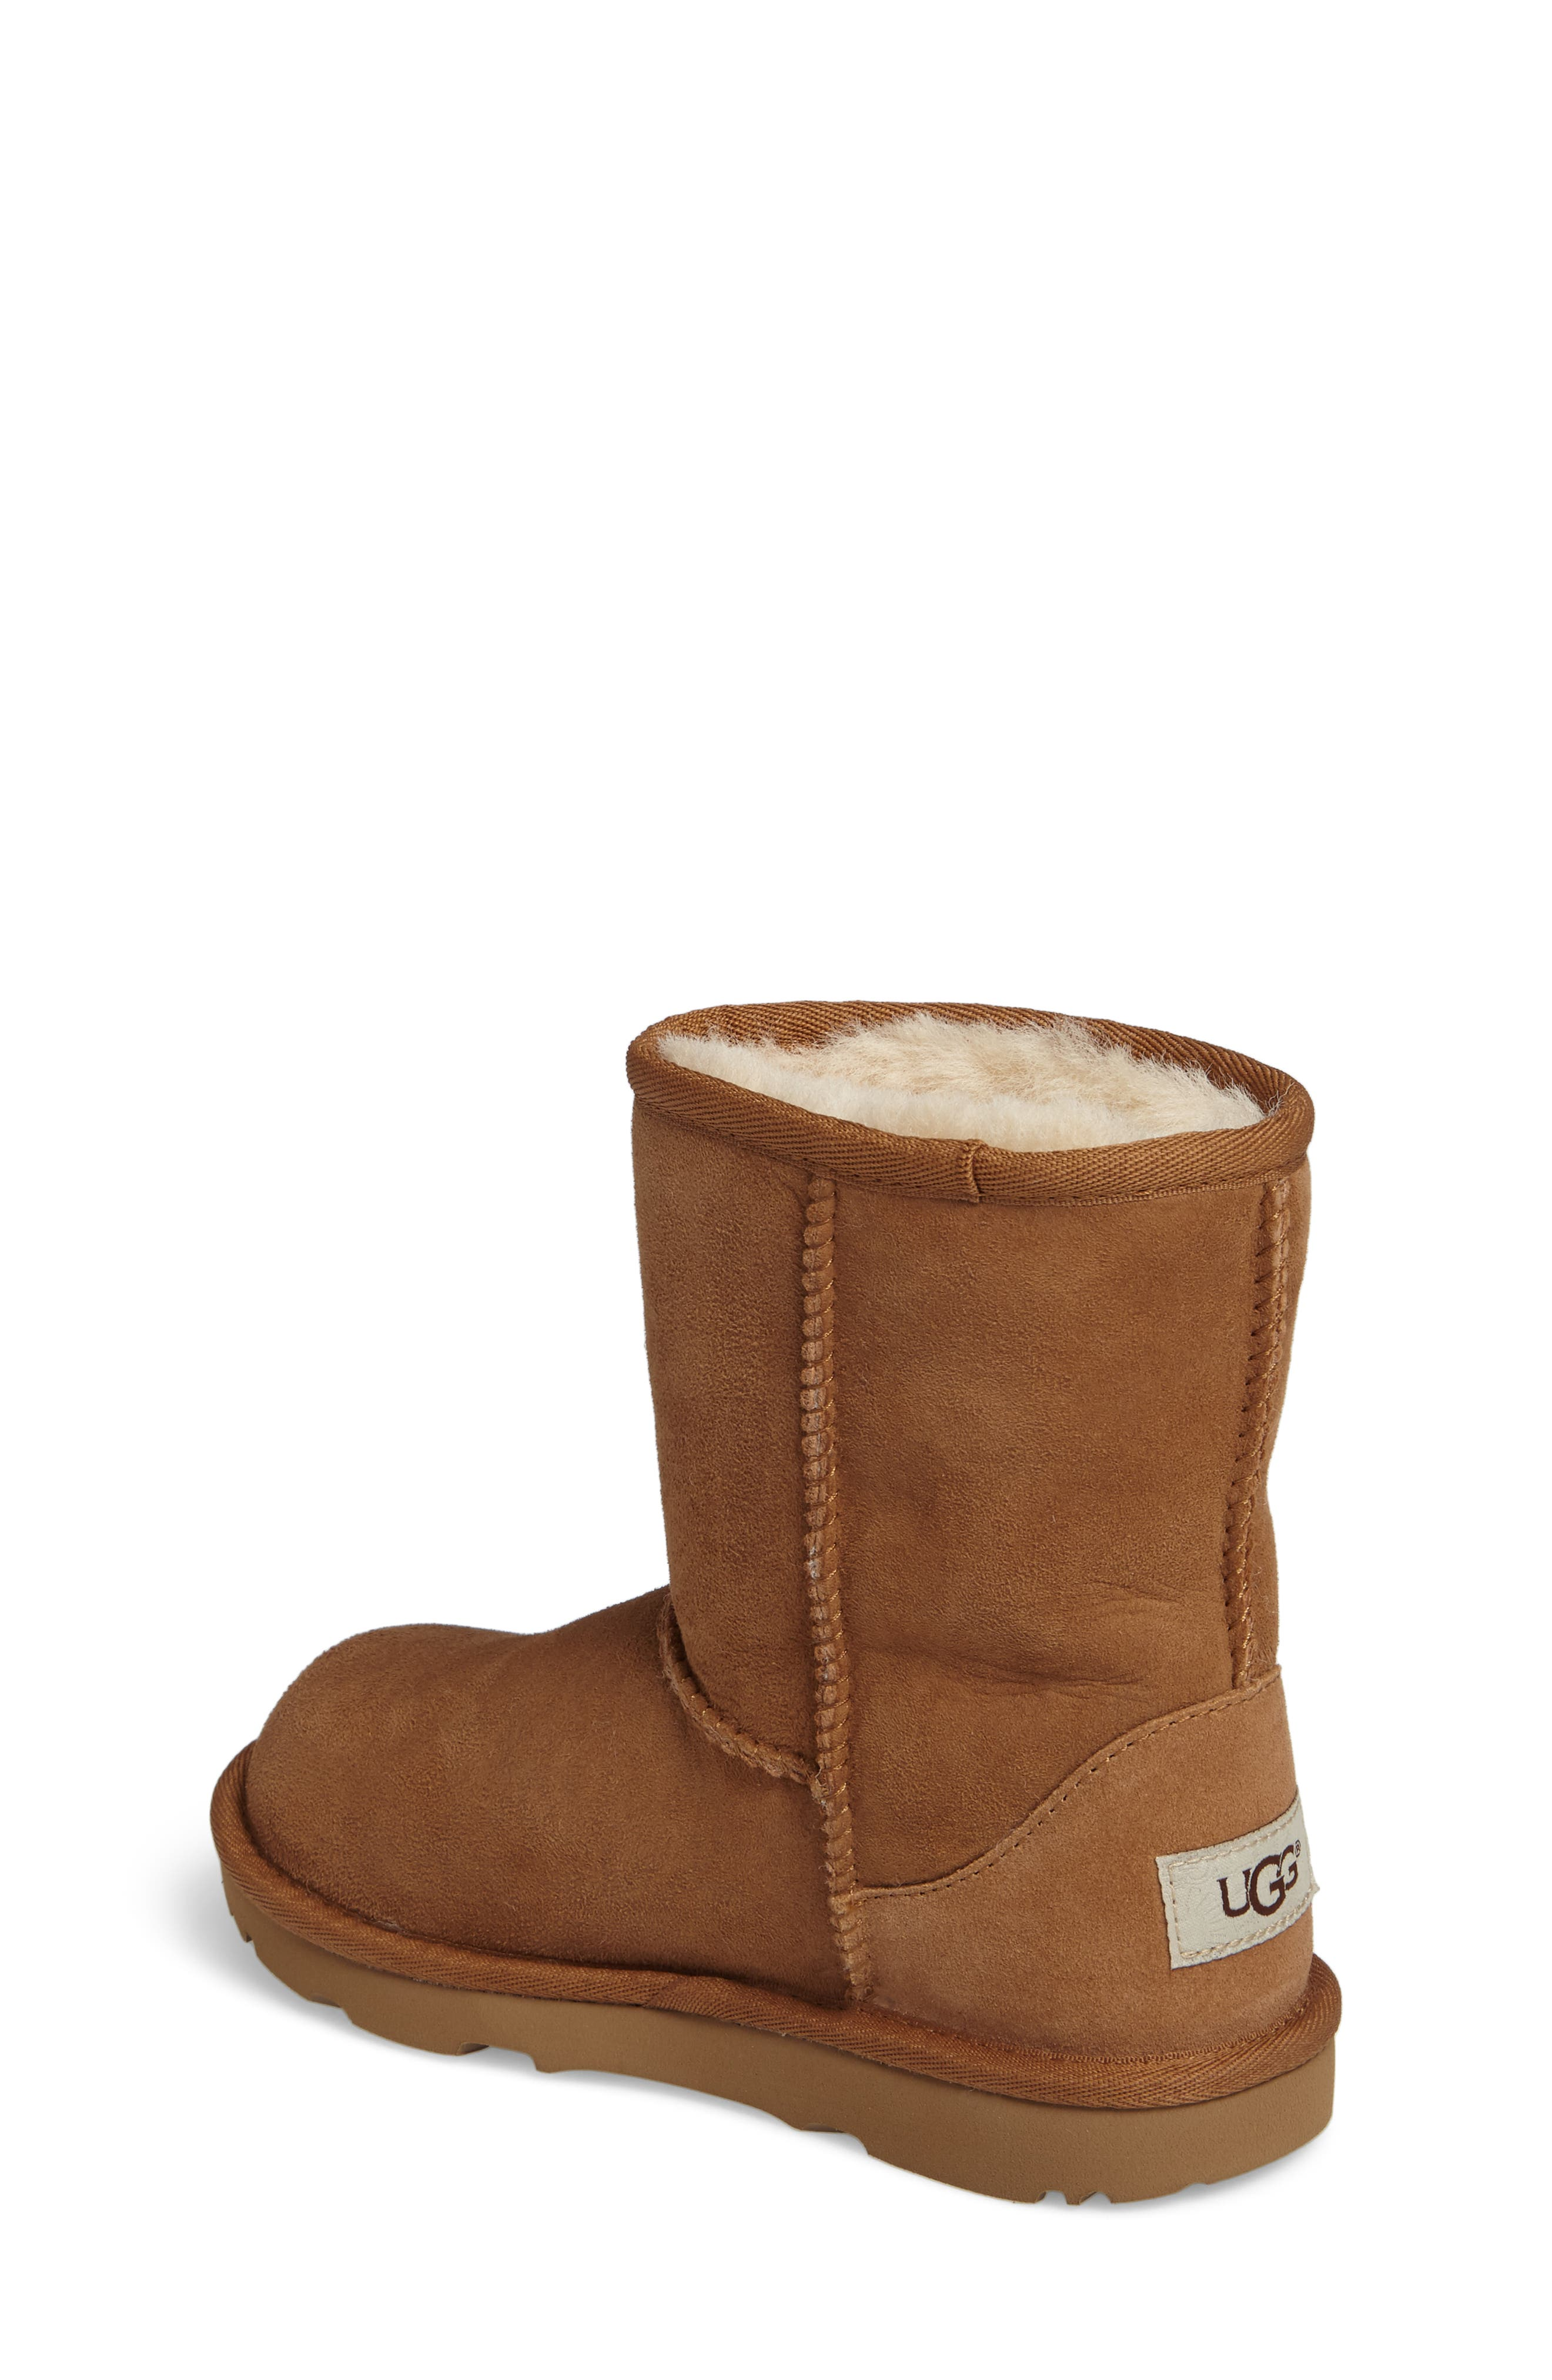 Classic II Water Resistant Genuine Shearling Boot,                             Alternate thumbnail 2, color,                             Chestnut Brown